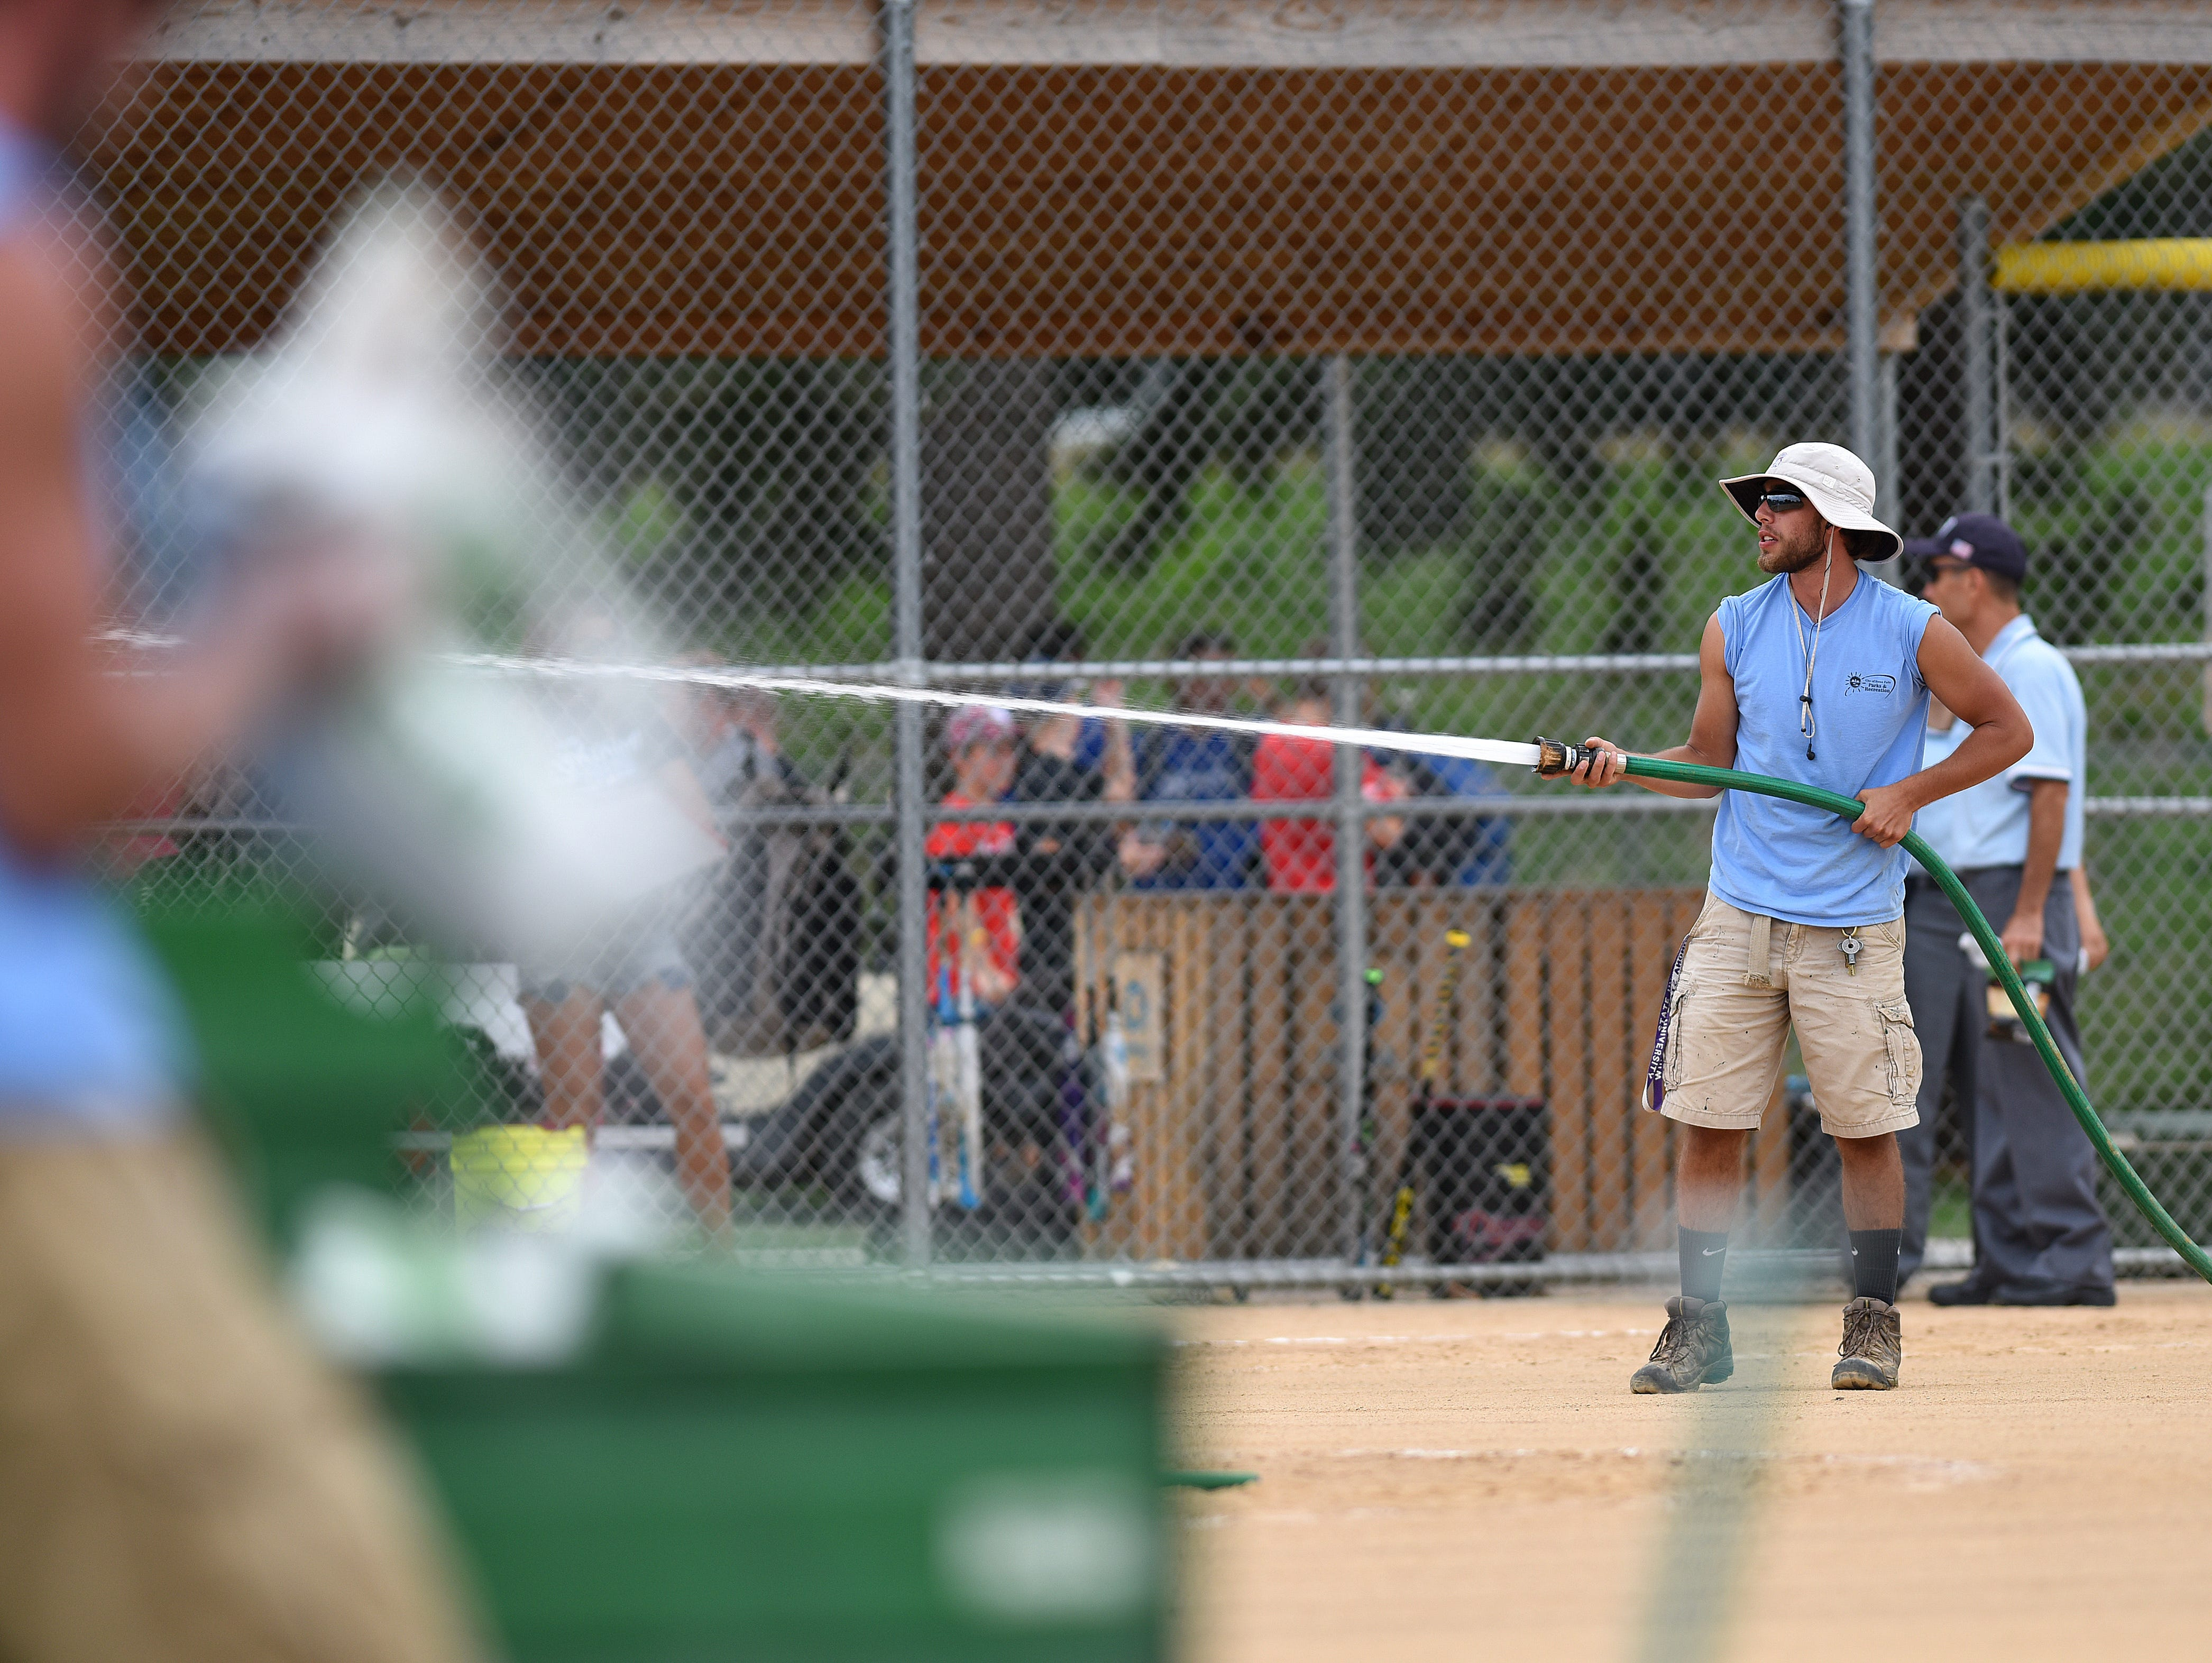 Sioux Falls Park and Rec, Adam Brandner, prepares the softball field before the ASA 14U national softball tournament at Sherman Park in Sioux Falls, S.D., Monday, Aug. 1, 2016.